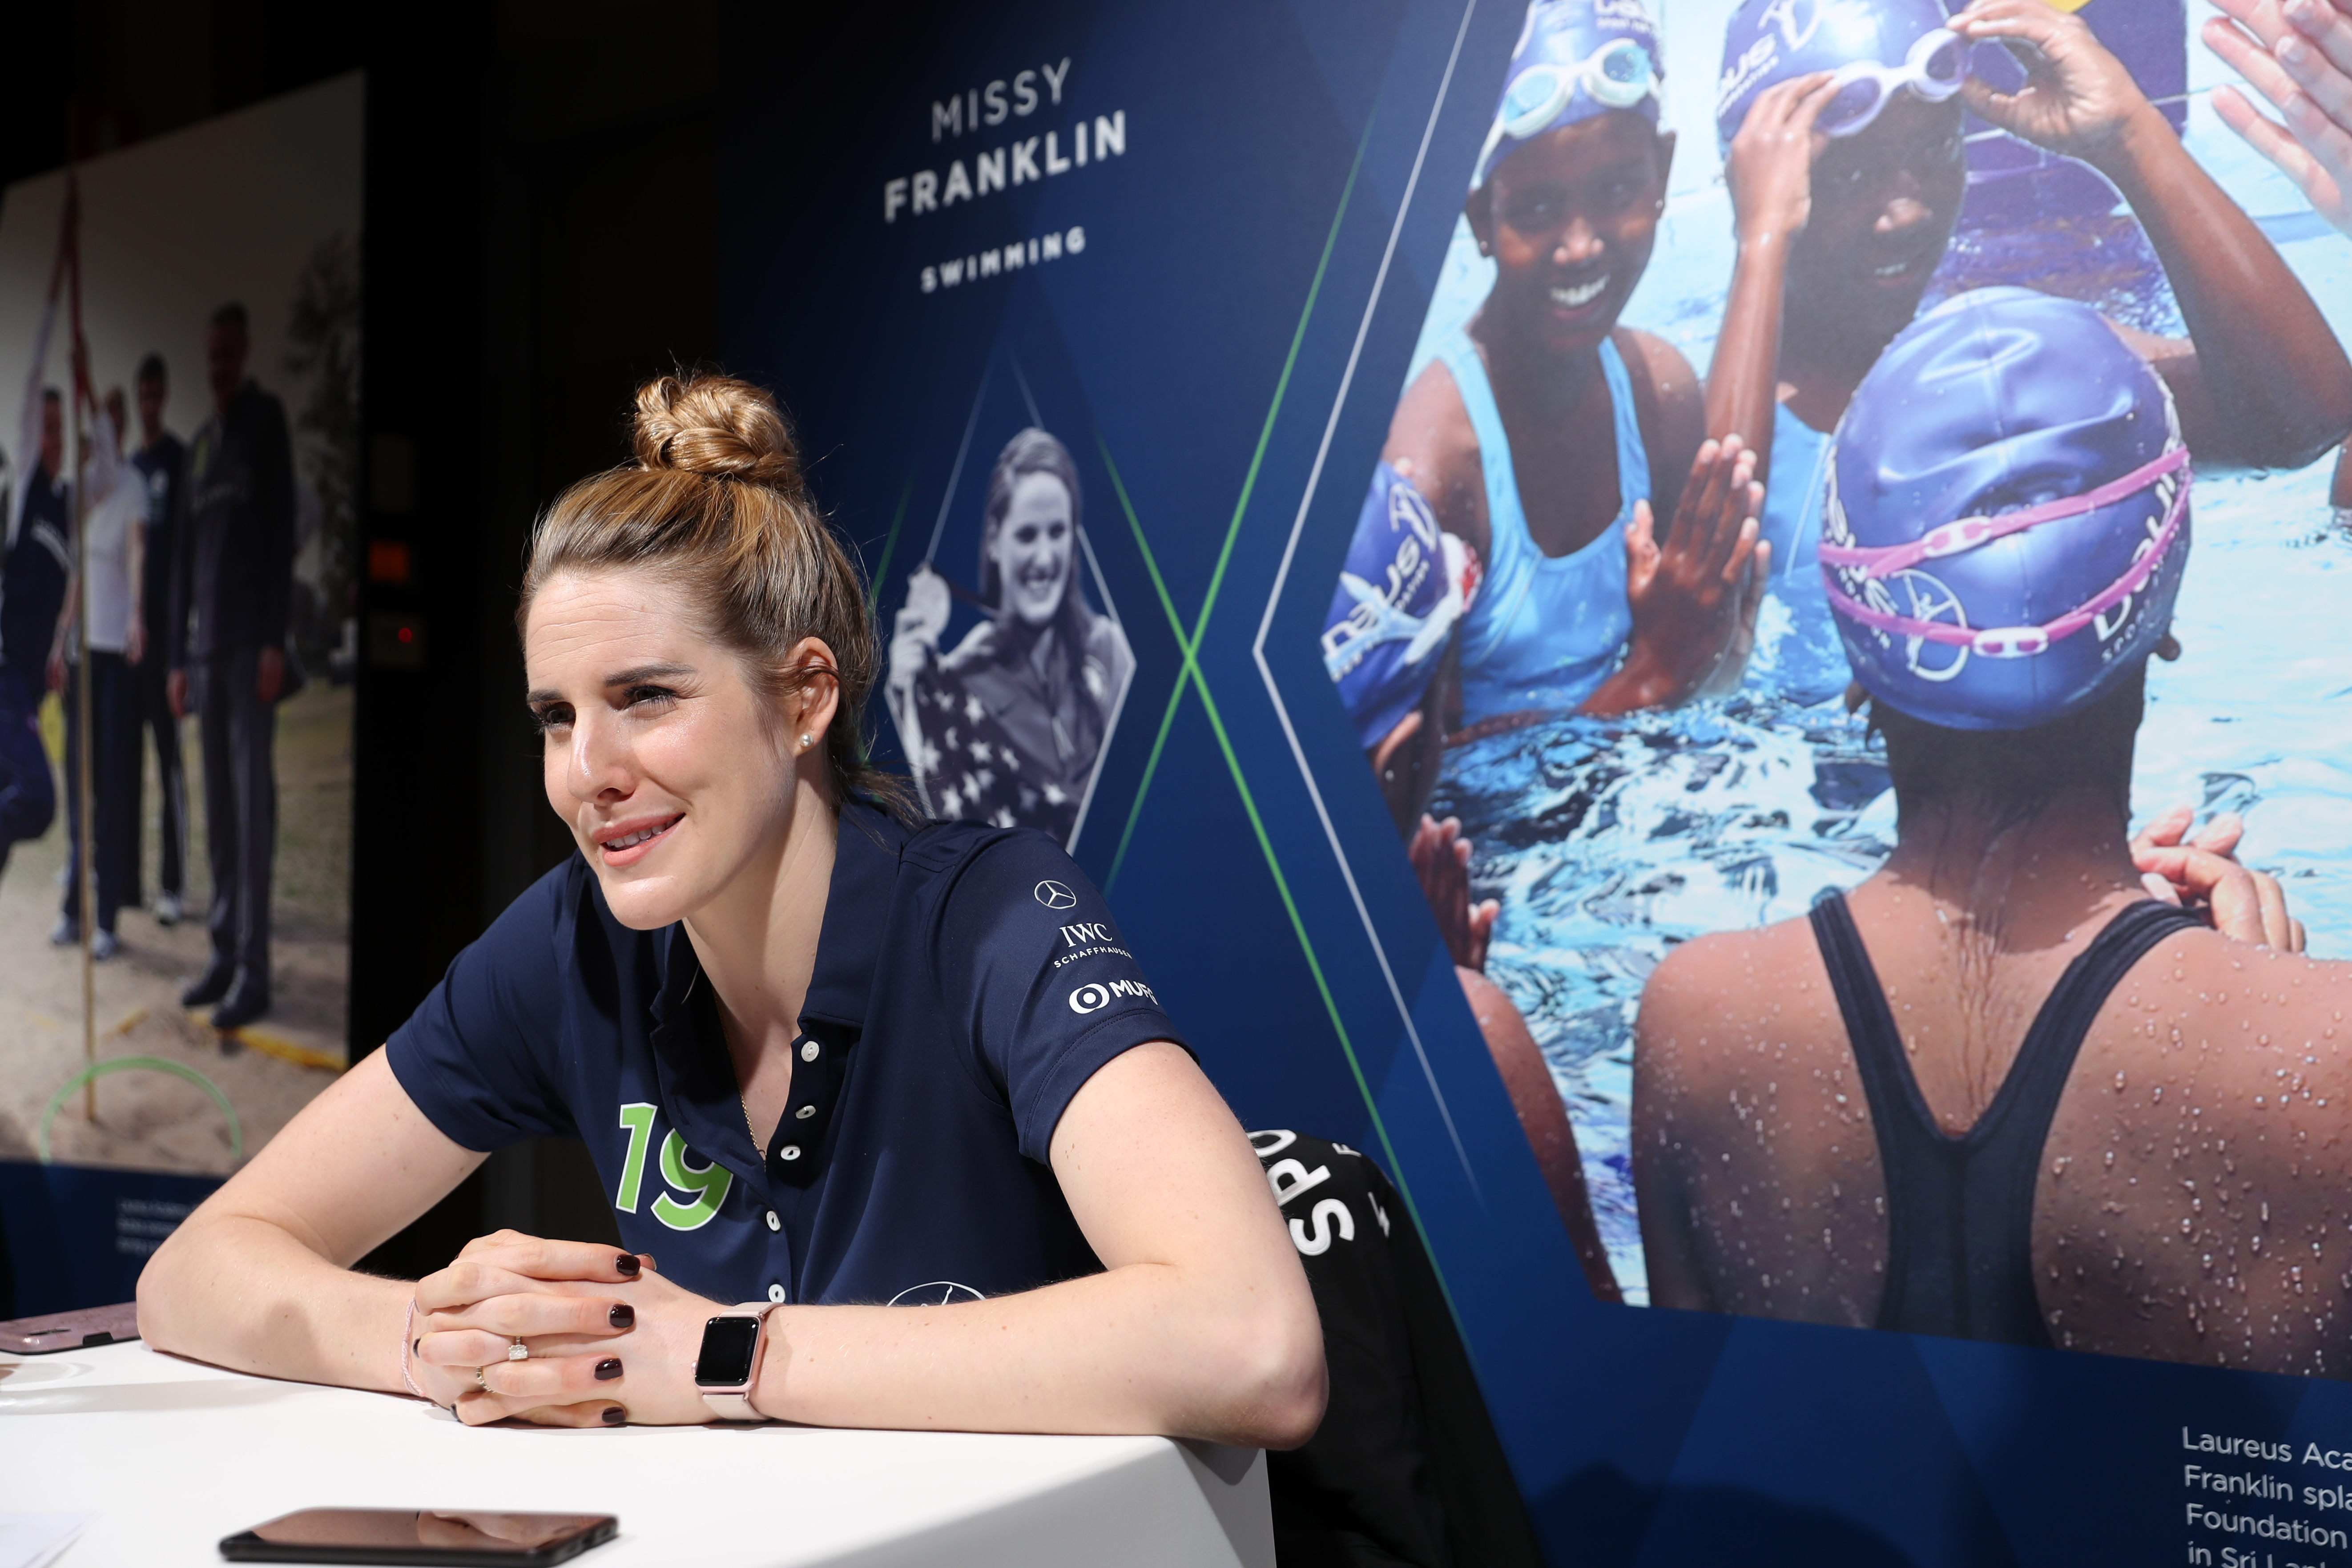 Olympian Missy Franklin Says She 'Really Can't' Swim After Devastating Injuries